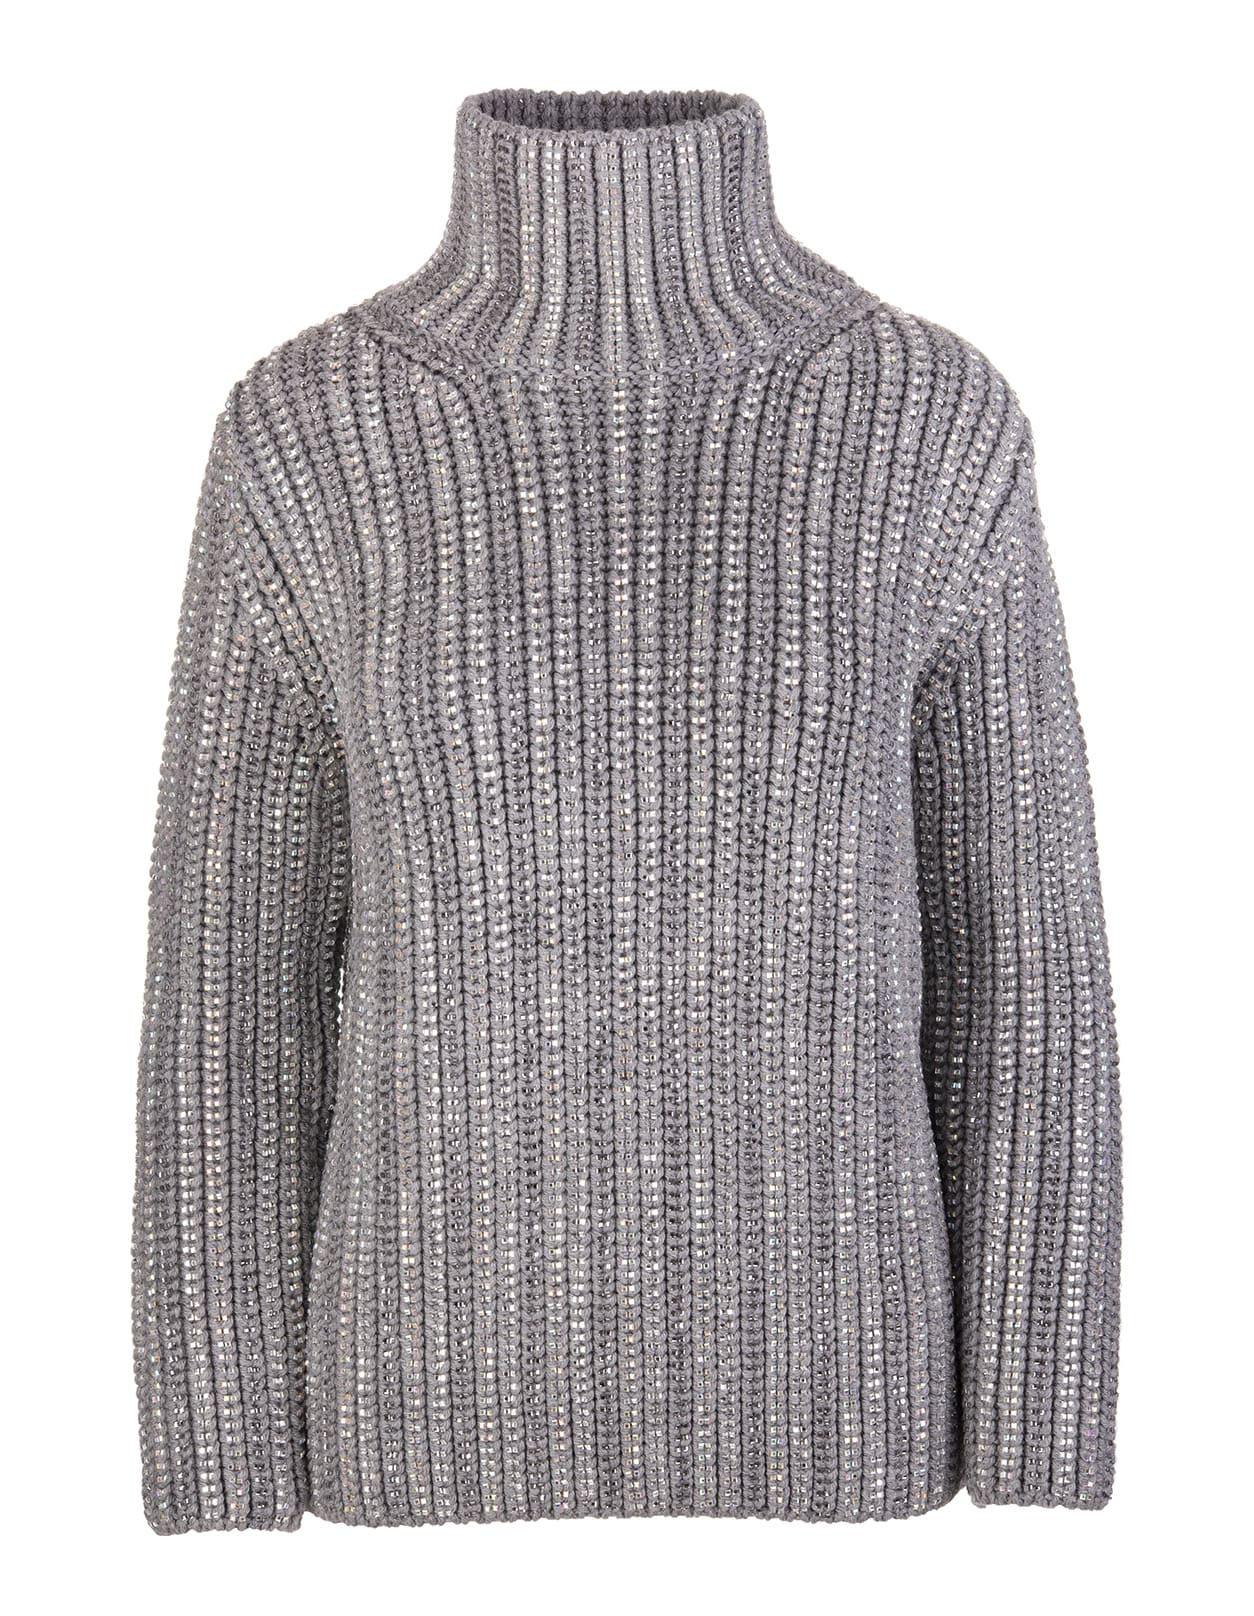 Grey High Collar Sweater With Crystals